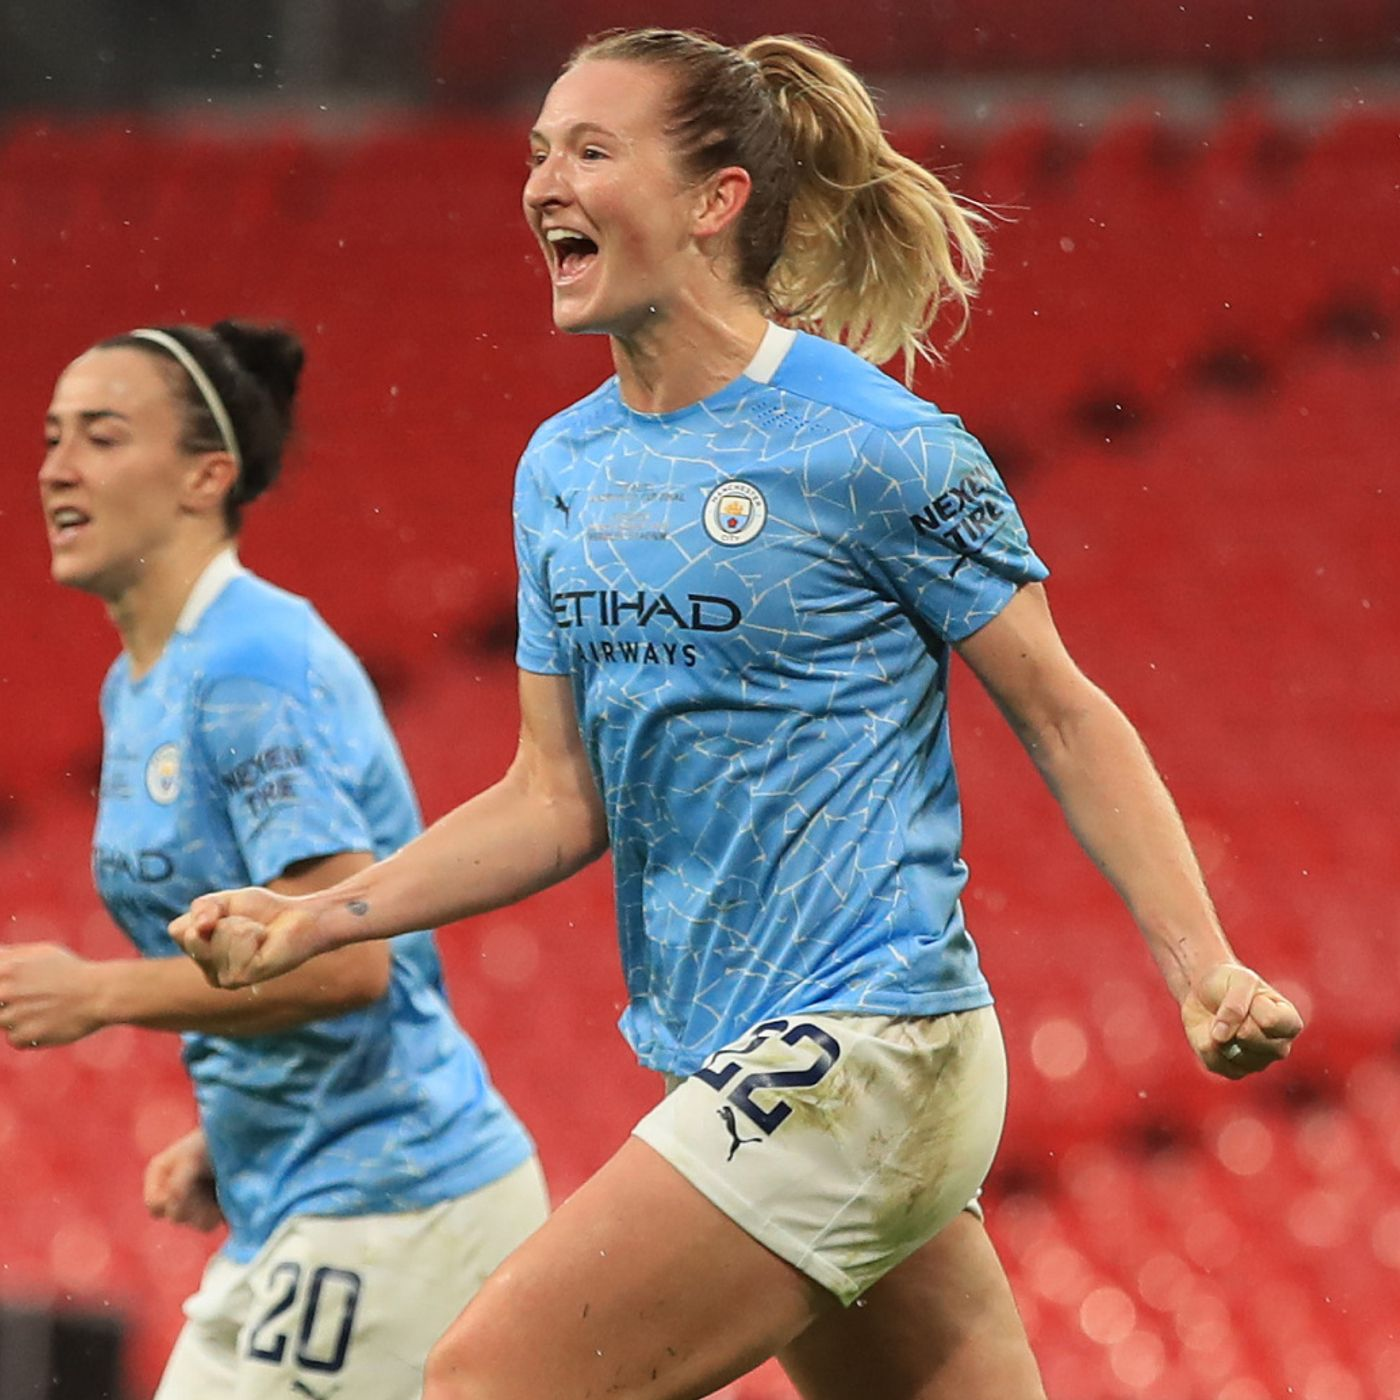 The Women's Football Show: Sam Mewis on life at Man City & Helen Ward on coronavirus restrictions and diversity within the women's game